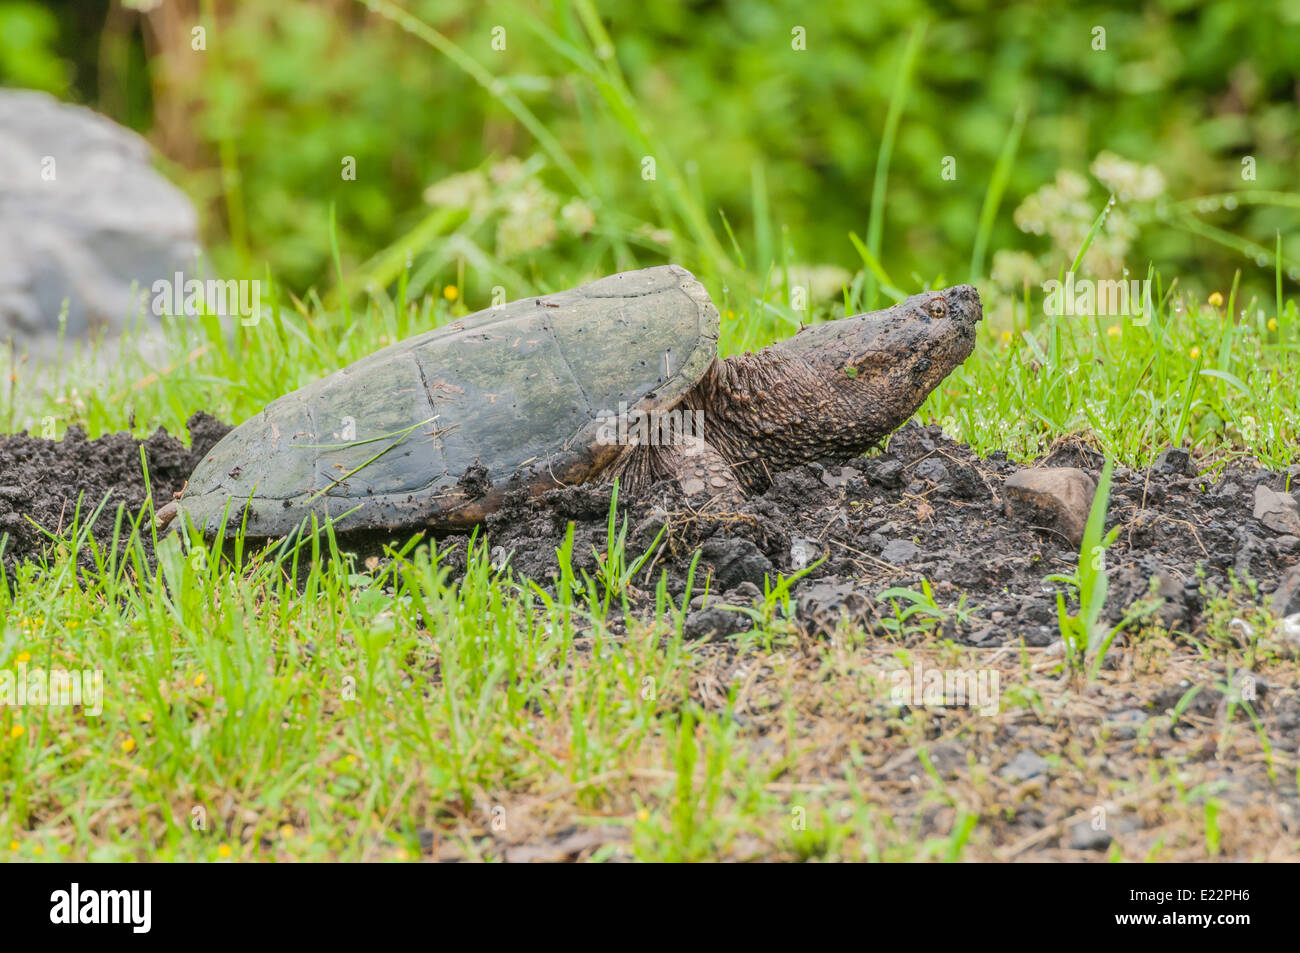 Snapping Turtle laying eggs in a hole she dug out in late spring. Stock Photo